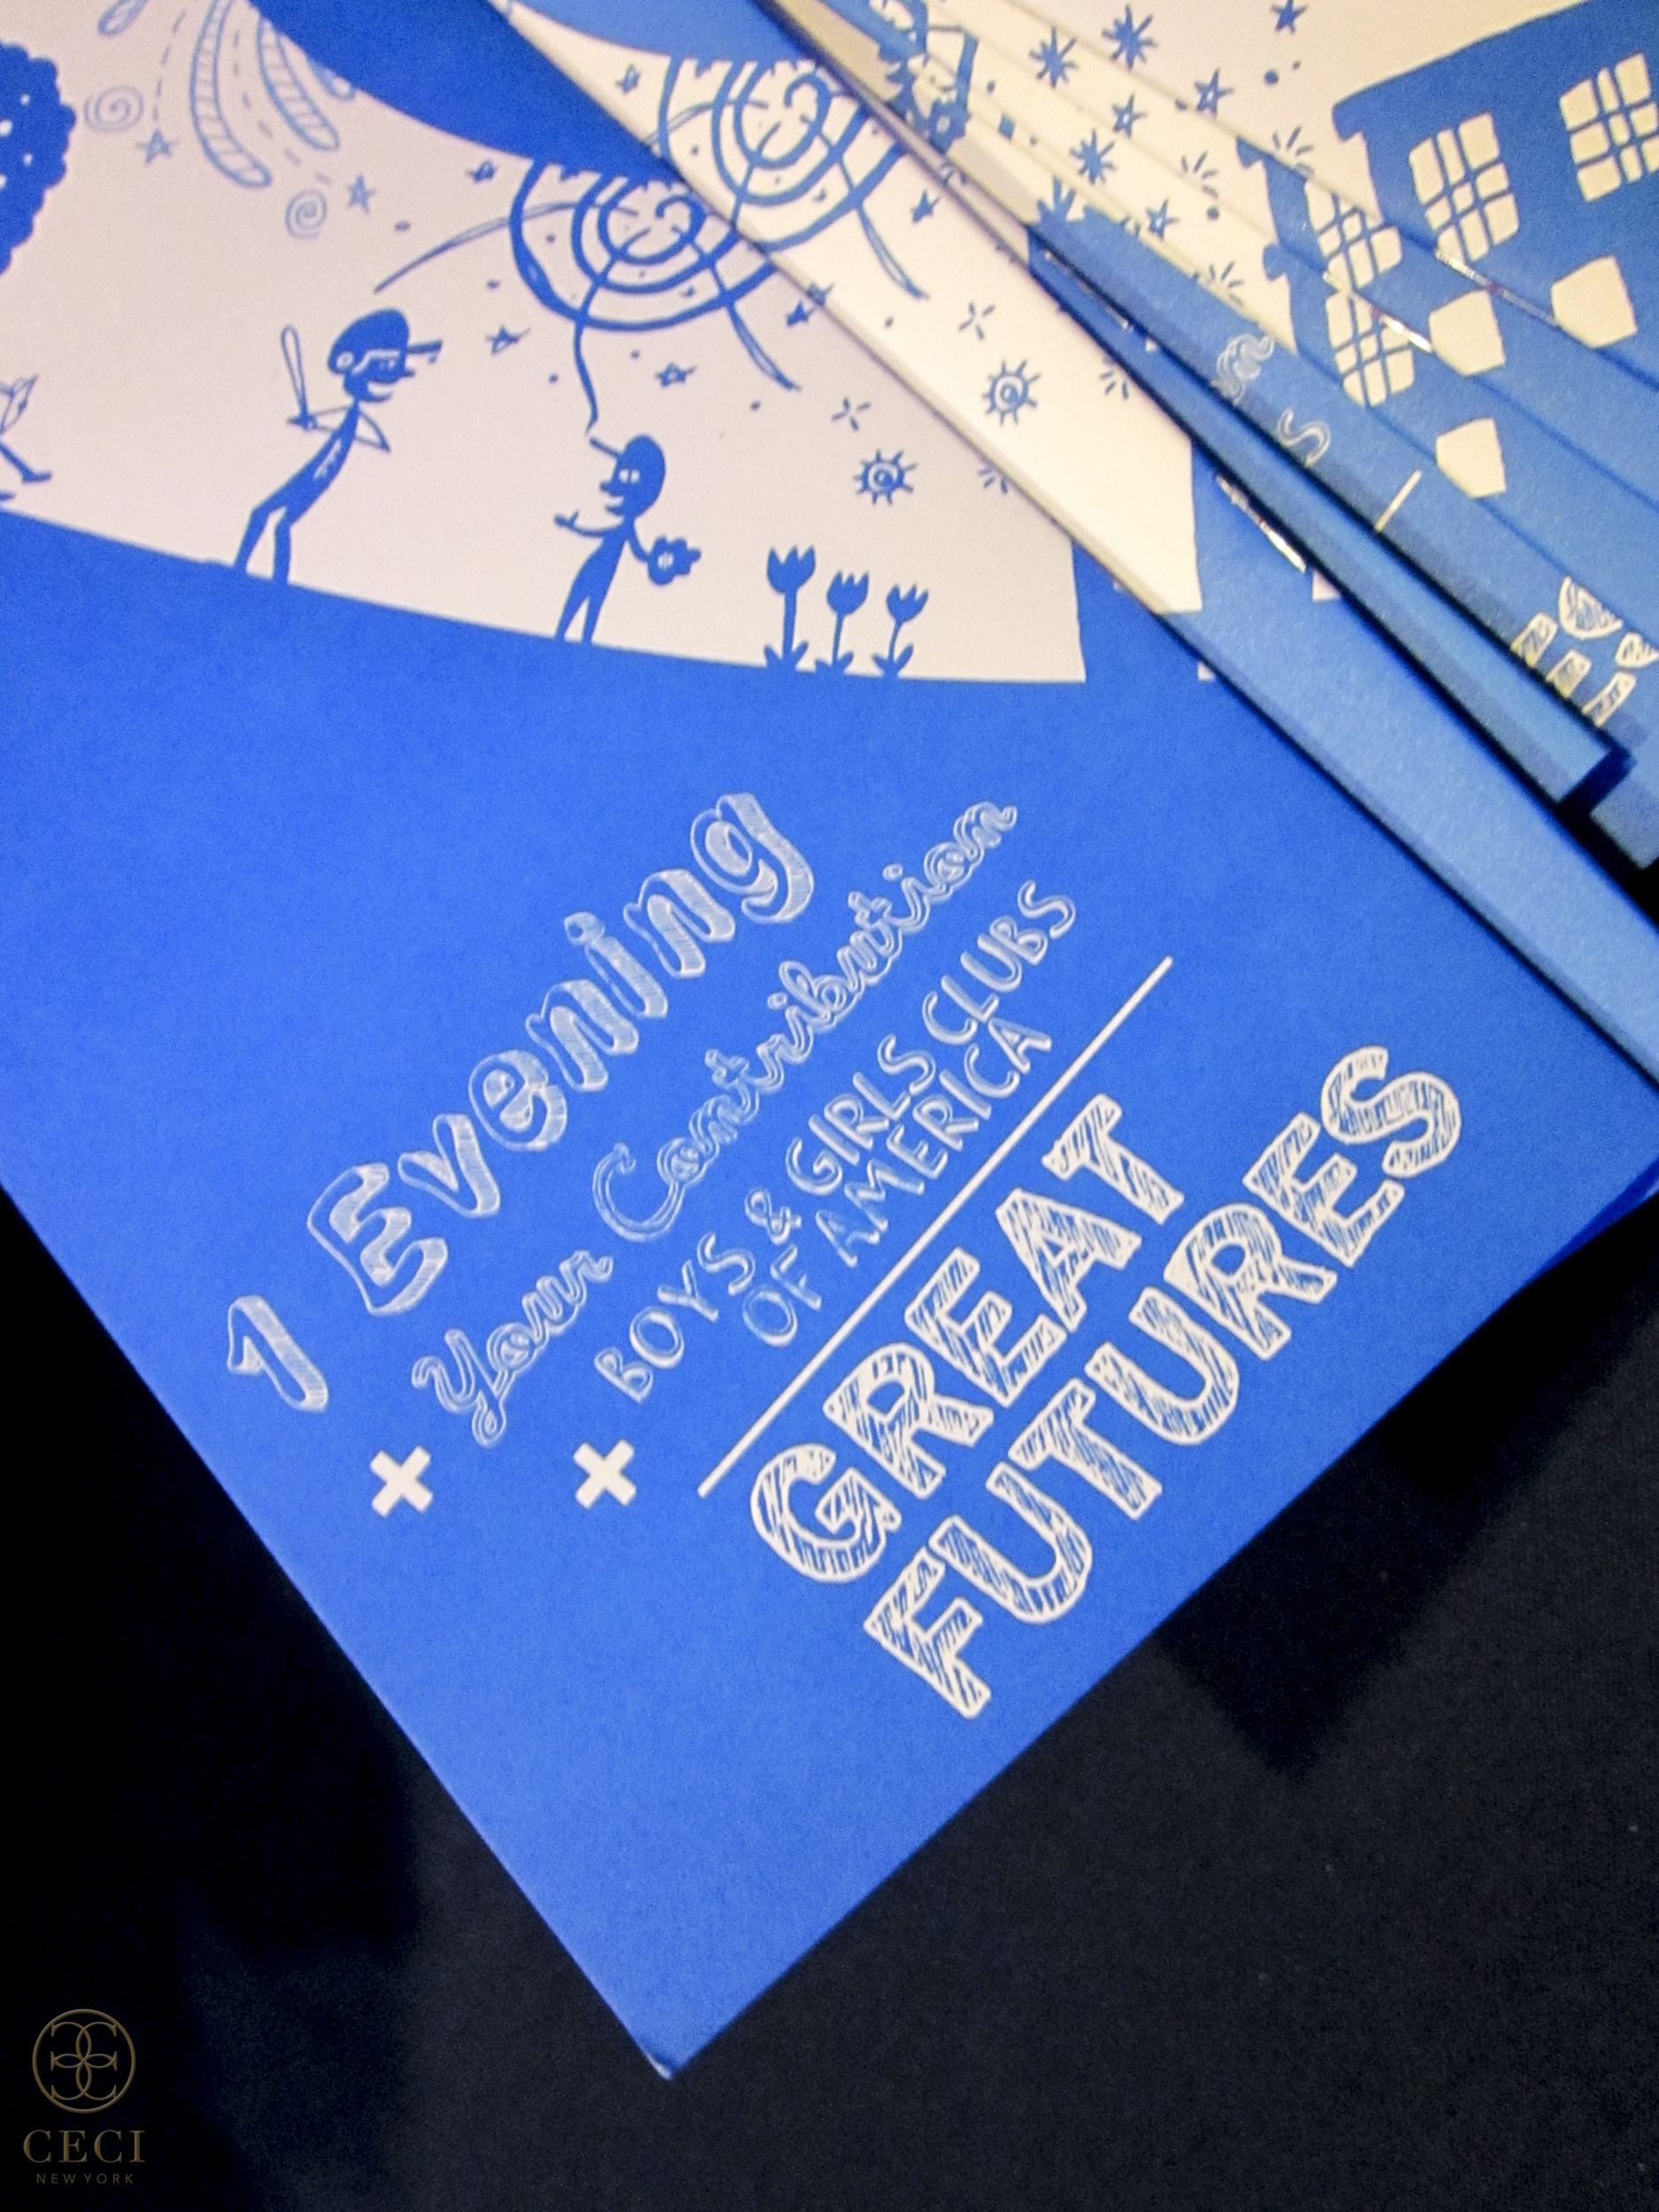 ceci-new-york-gives-back-boys-and-girls-club-of-america-great-futures-gala-2011-invitations-design-paper-accessories-signage-14.jpg